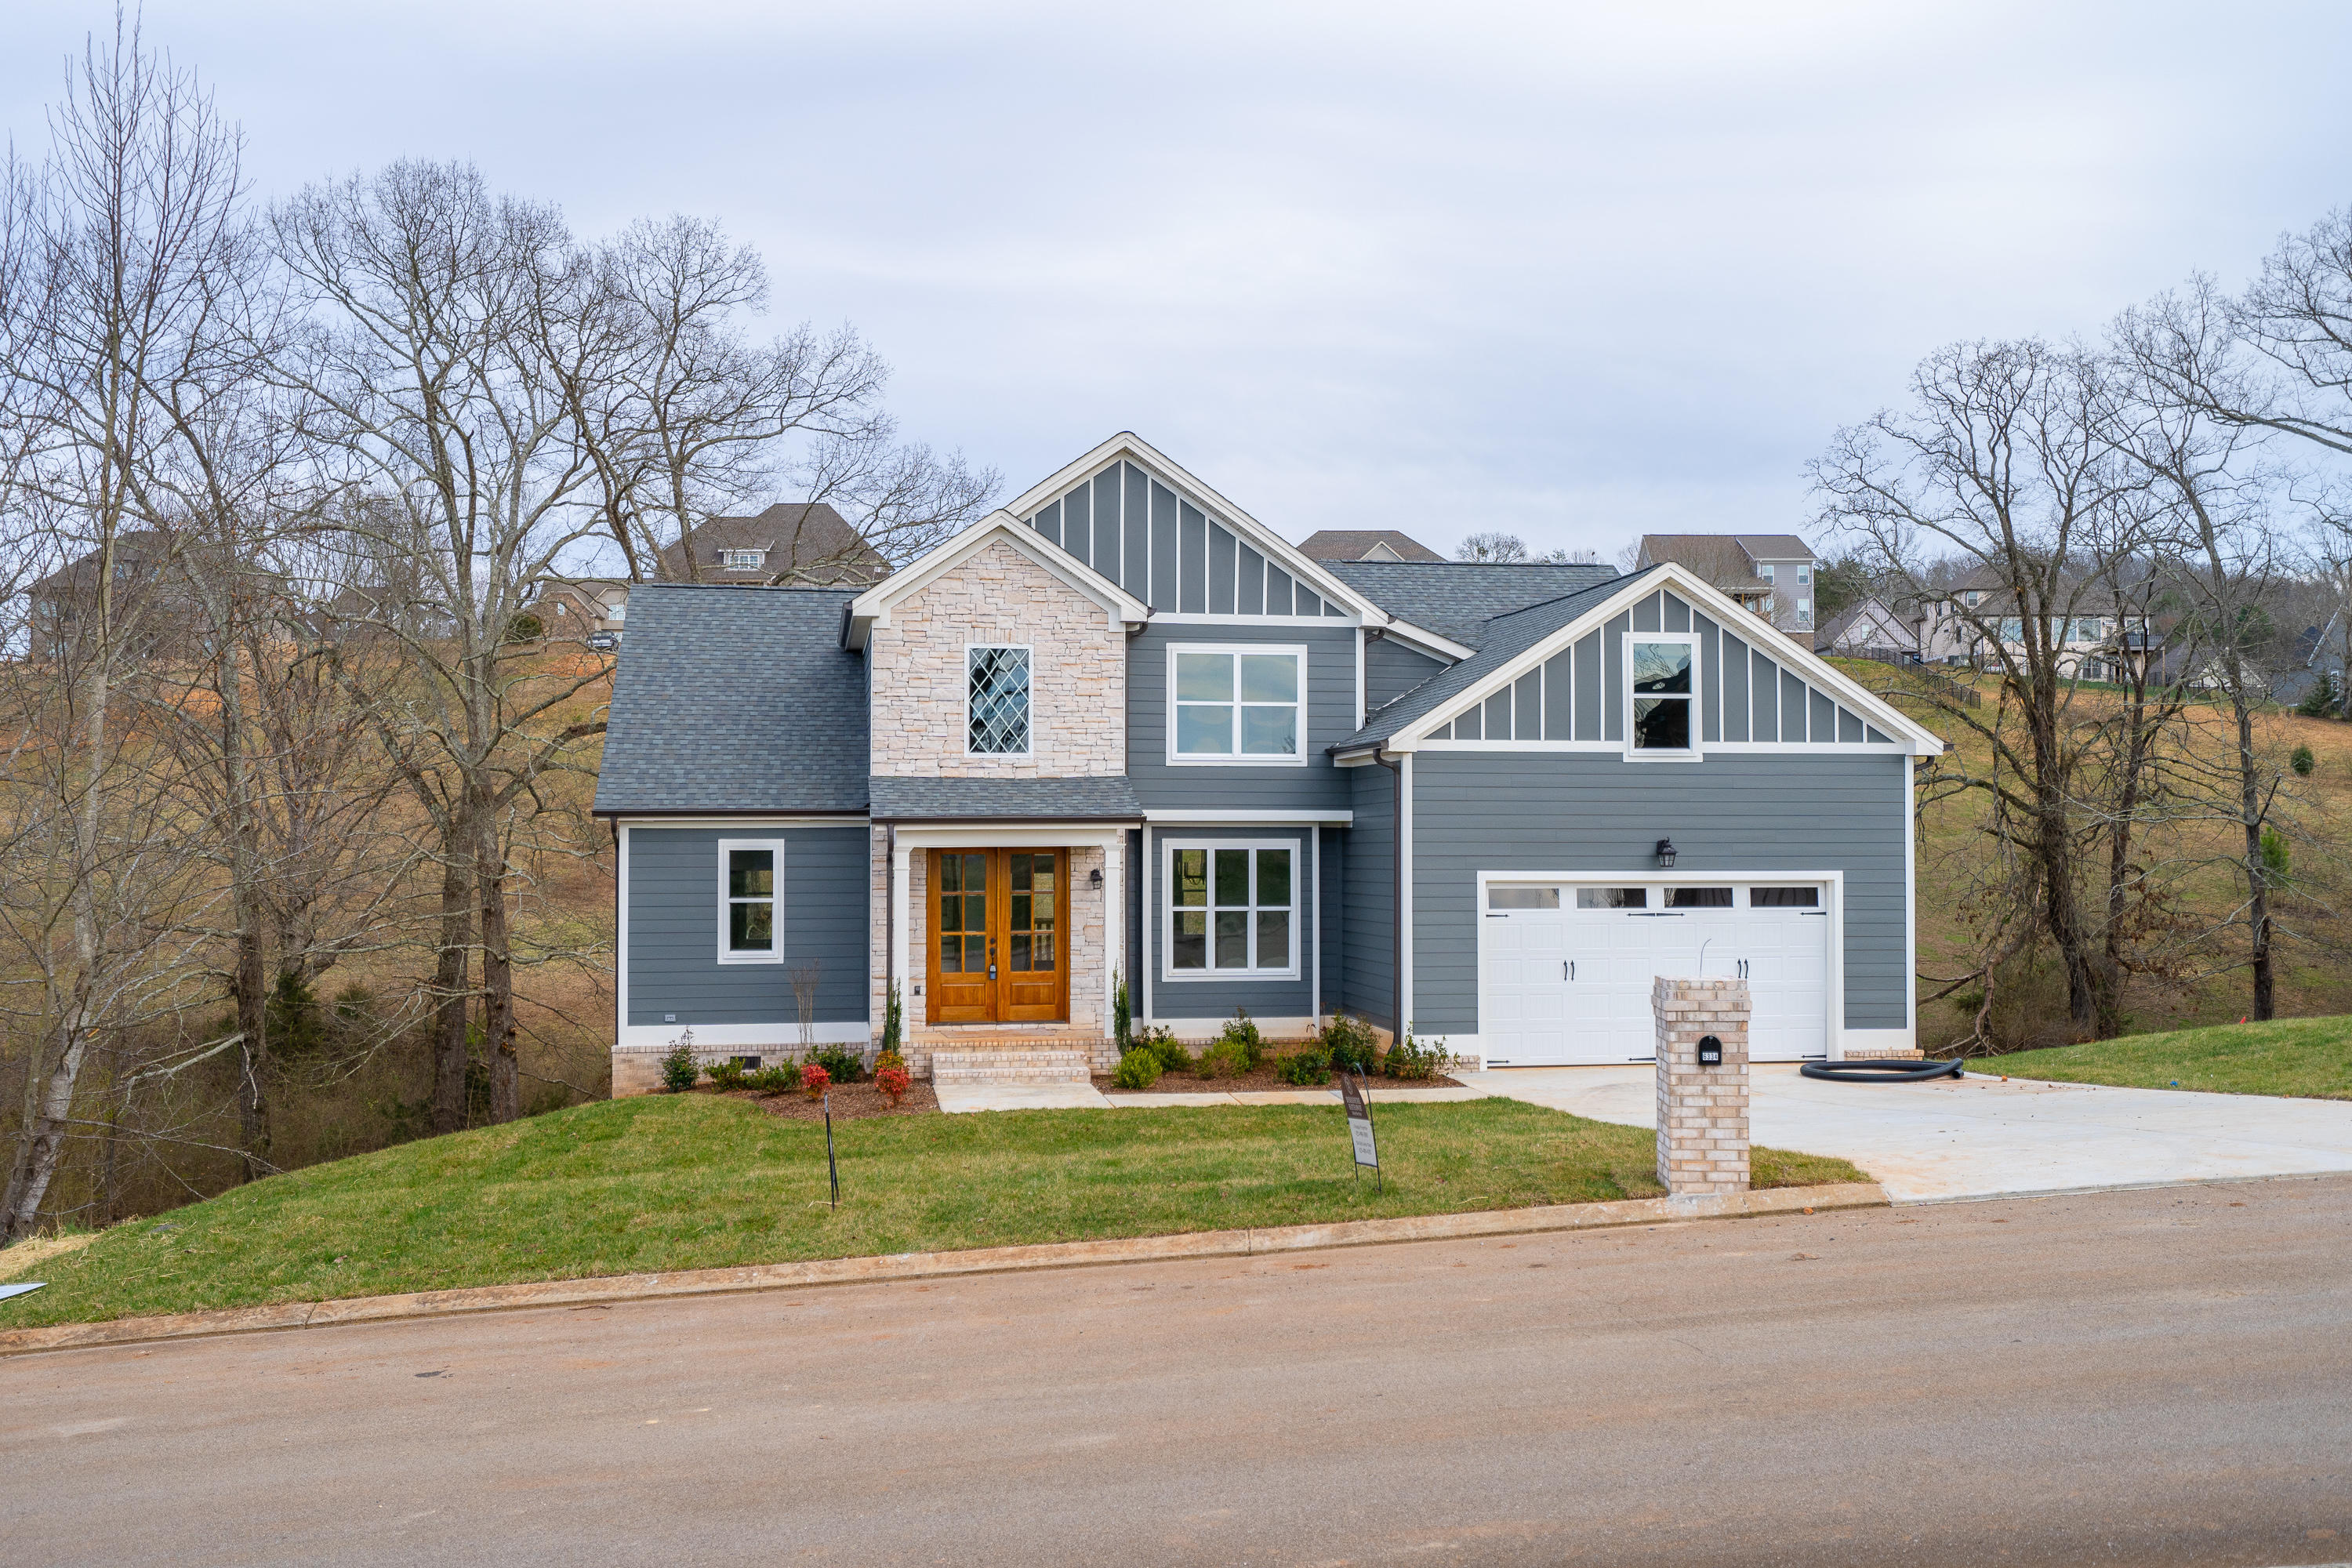 6334 Breezy Hollow Ln, Harrison, TN 37341